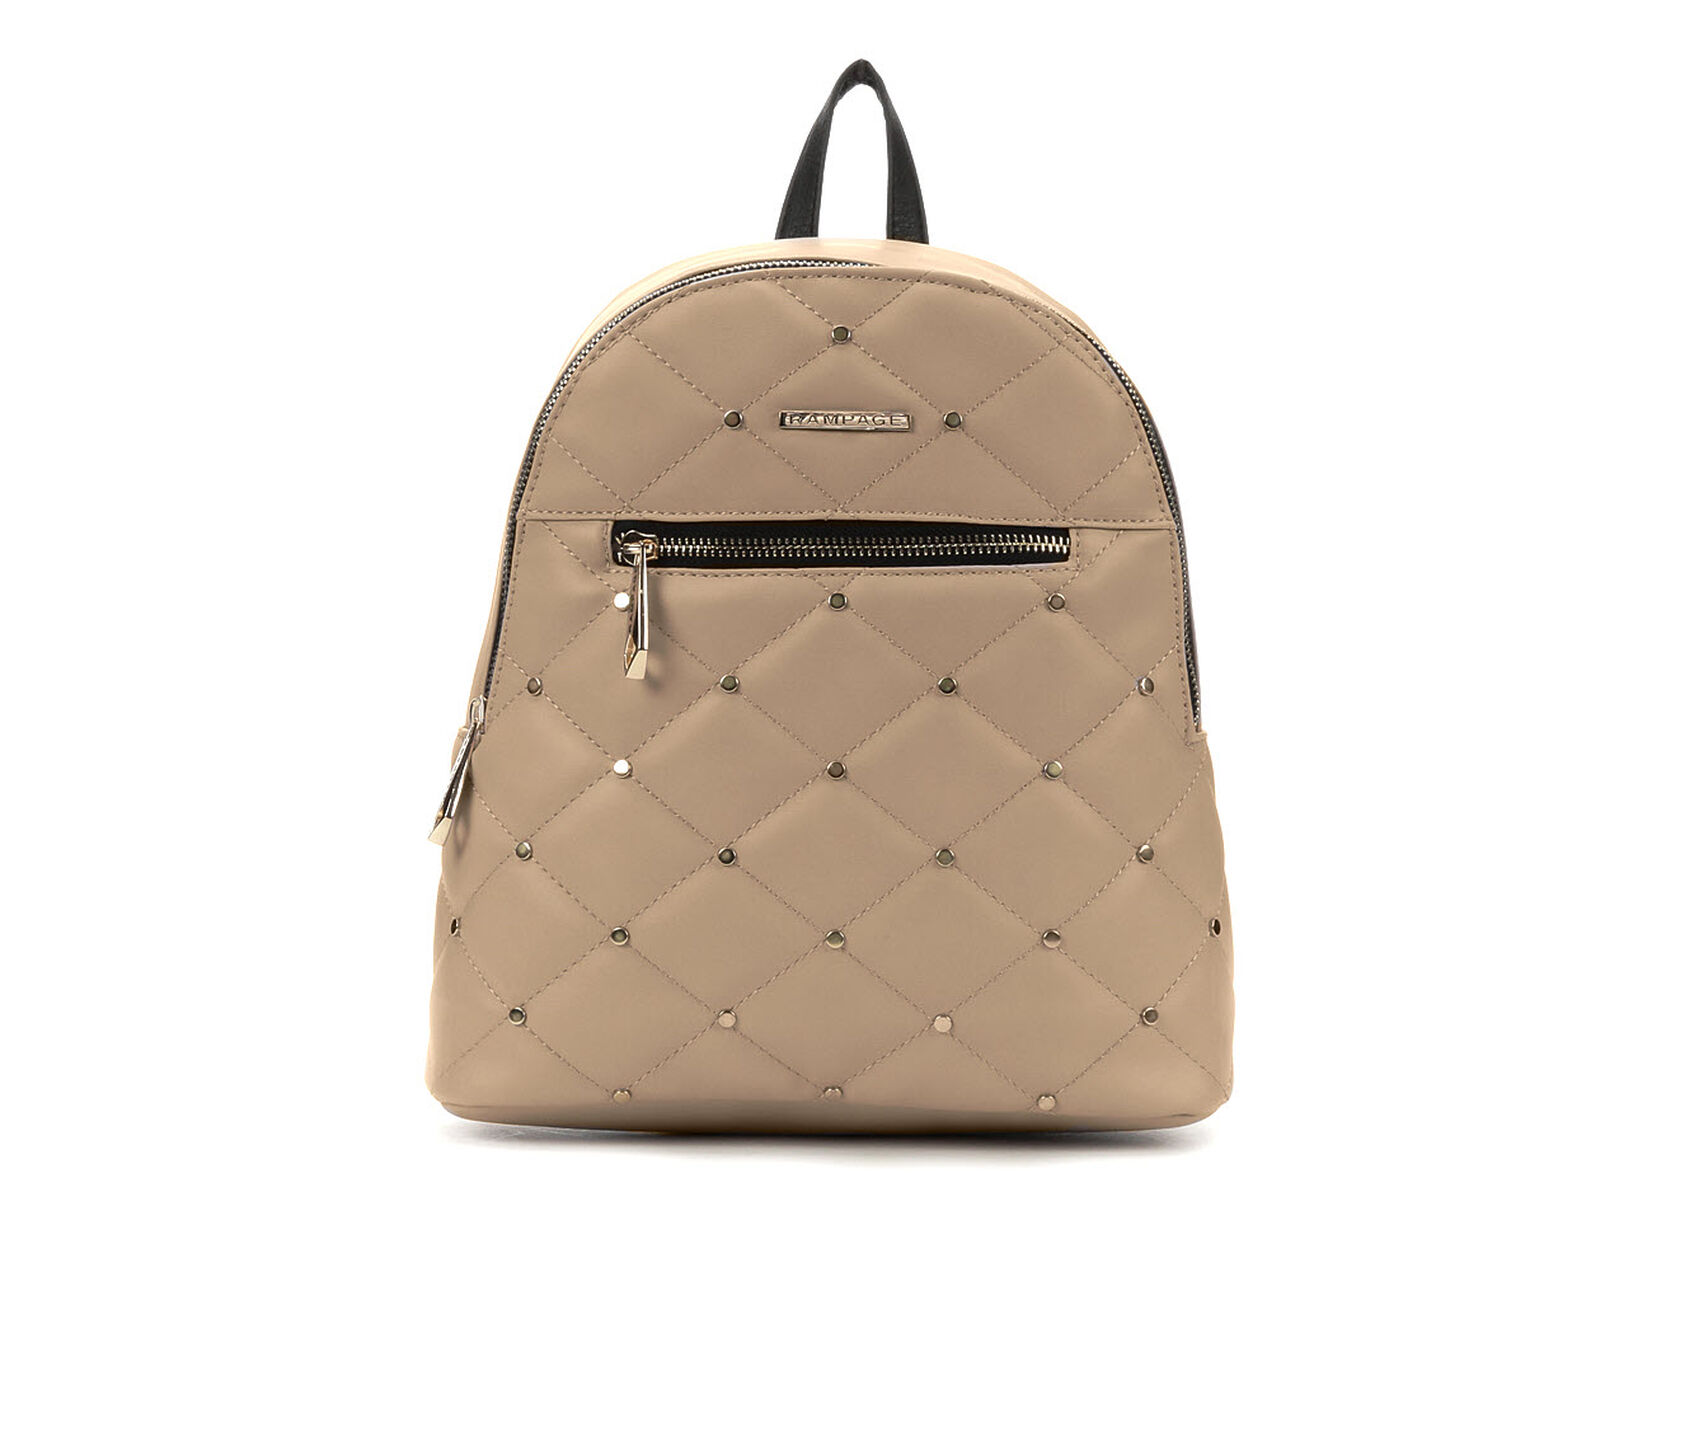 64101c60367c Rampage Studded Quilt Backpack